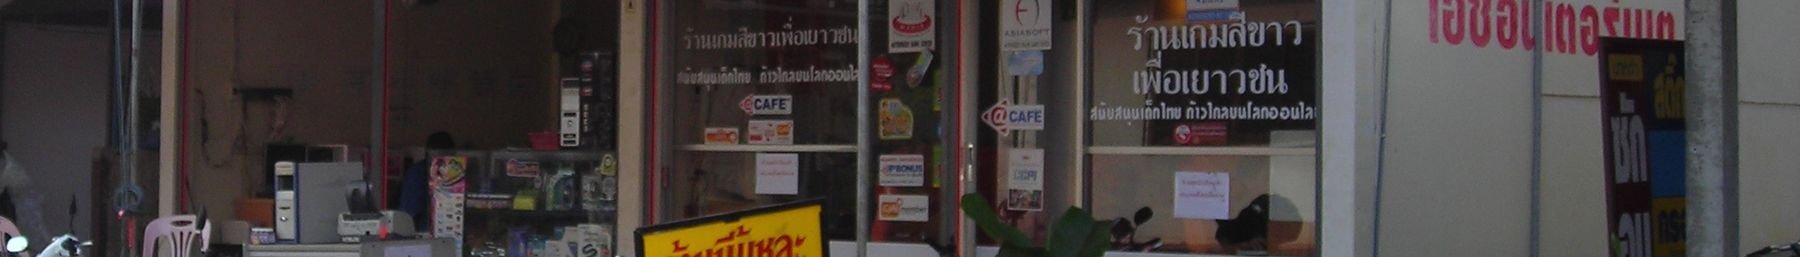 WV banner Internet telephony Internet cafe in Thailand.jpg